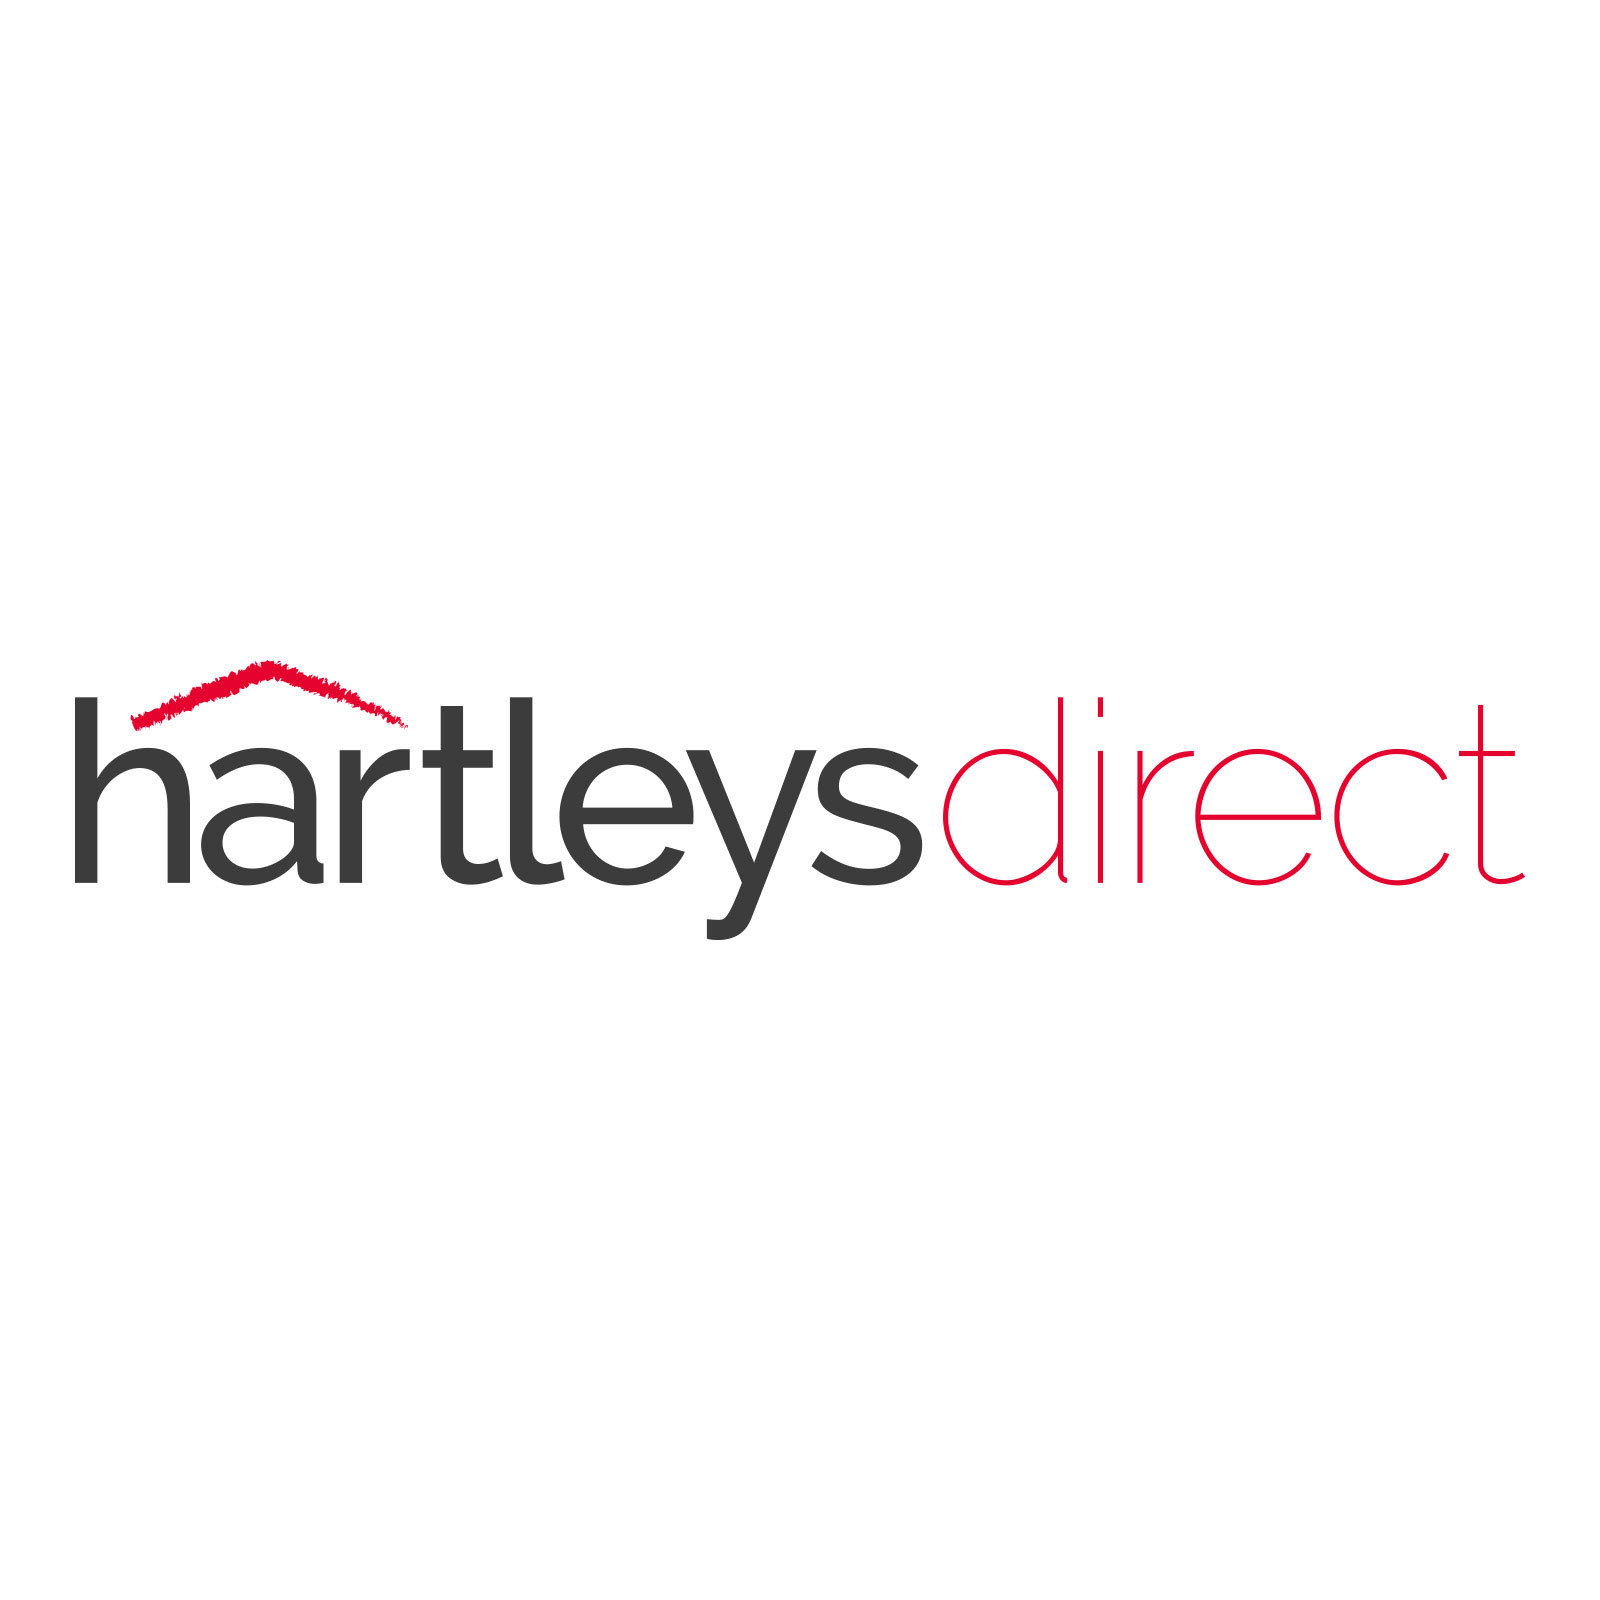 Hartleys-Black-9-Cube-Unit-with-4-Black-Box-Drawers-on-White-Background.jpg